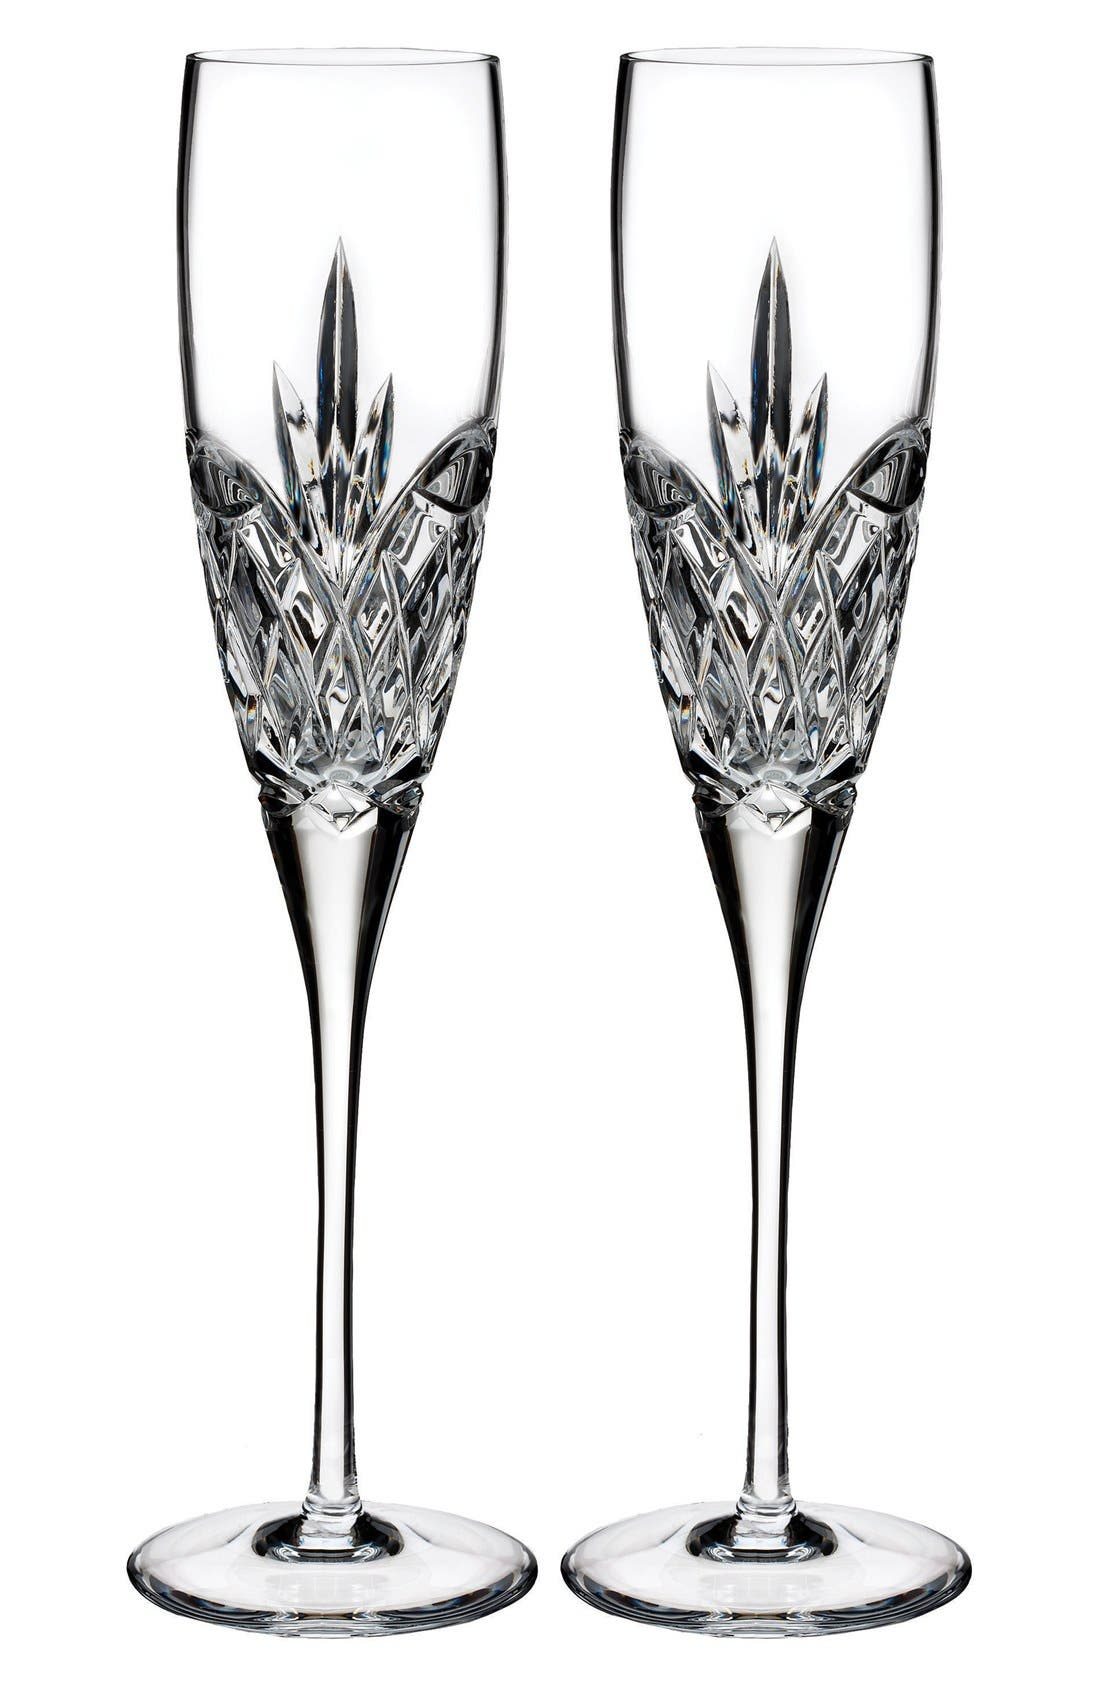 waterford lead crystal champagne flutes set - Crystal Champagne Flutes